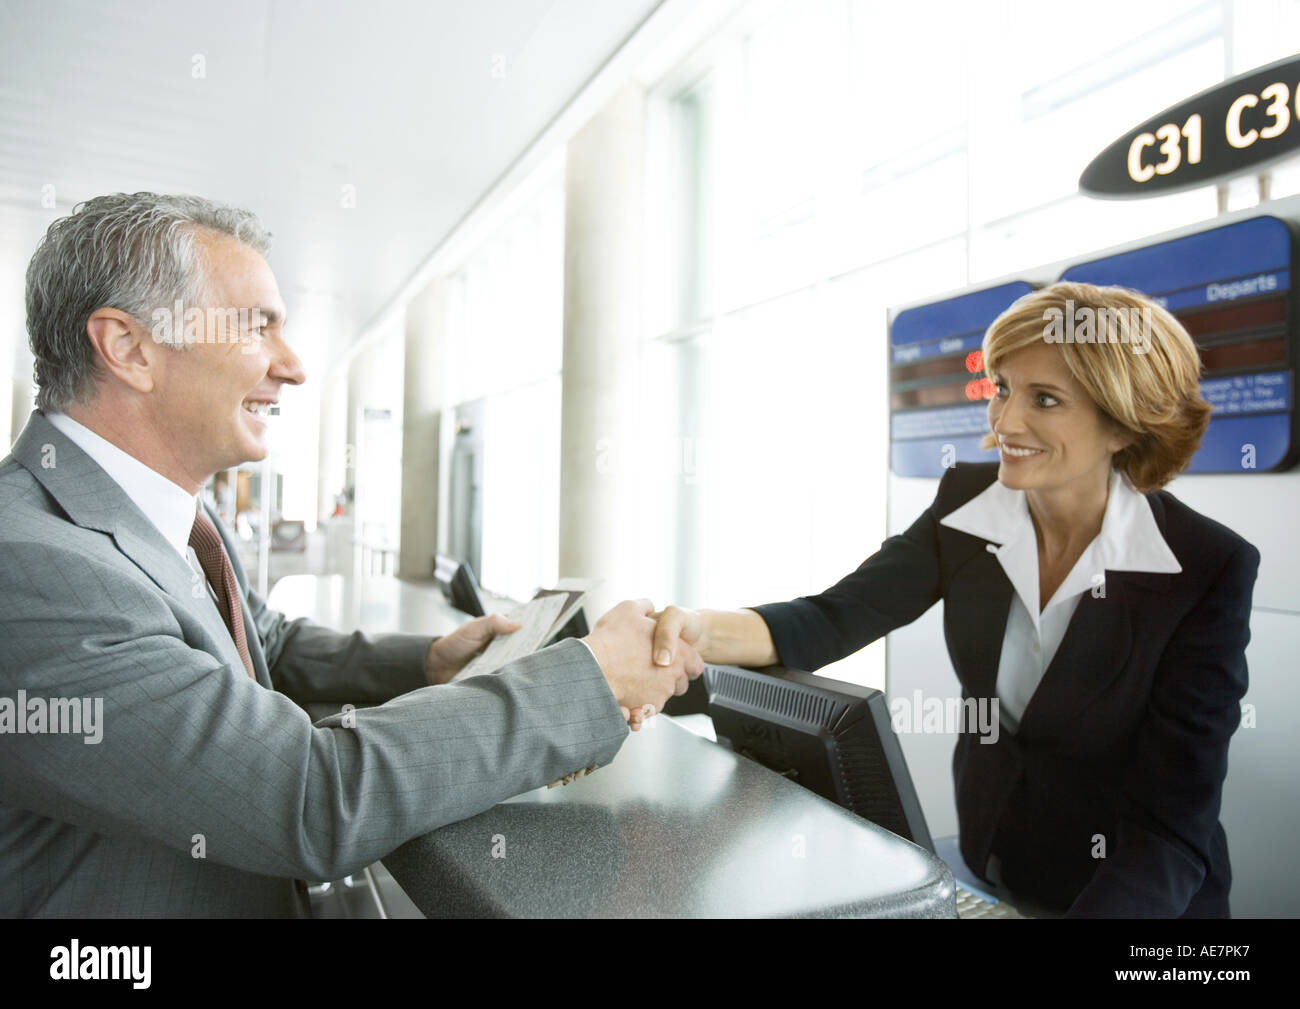 Airline attendant shaking hands with passenger at check-in counter - Stock Image